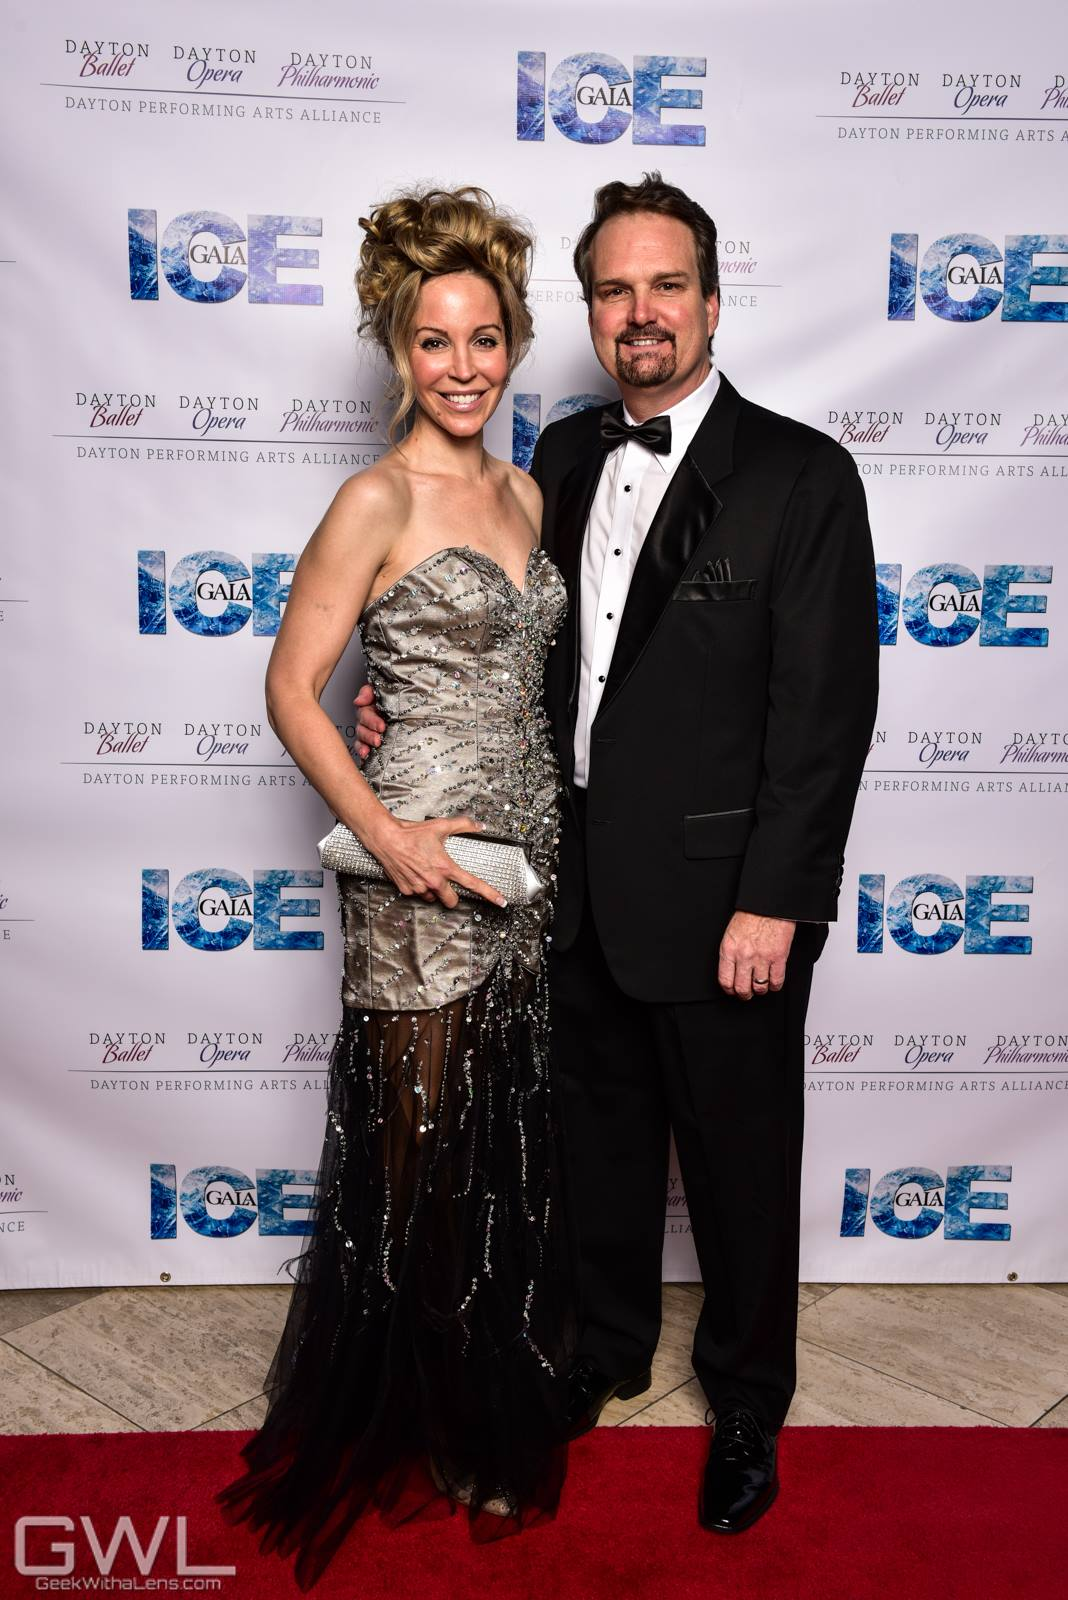 ICE Gala November 2014, Tammy chaired decor.jpg